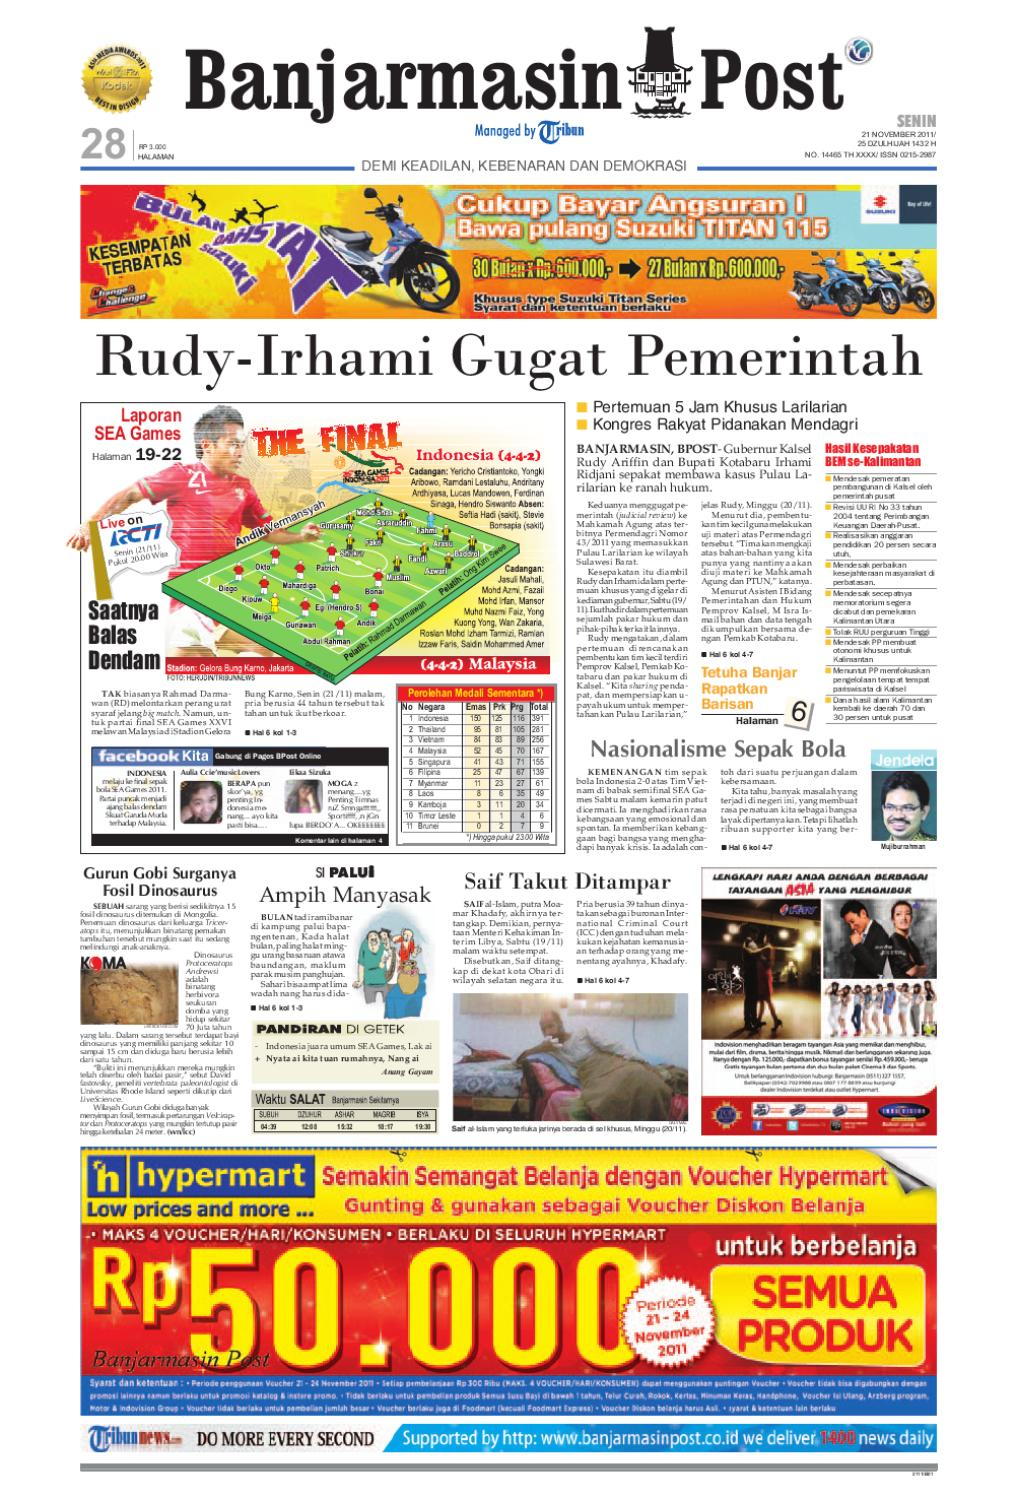 Banjarmasin Post Edisi Cetak Senin 21 November 2011 By Banjarmasin